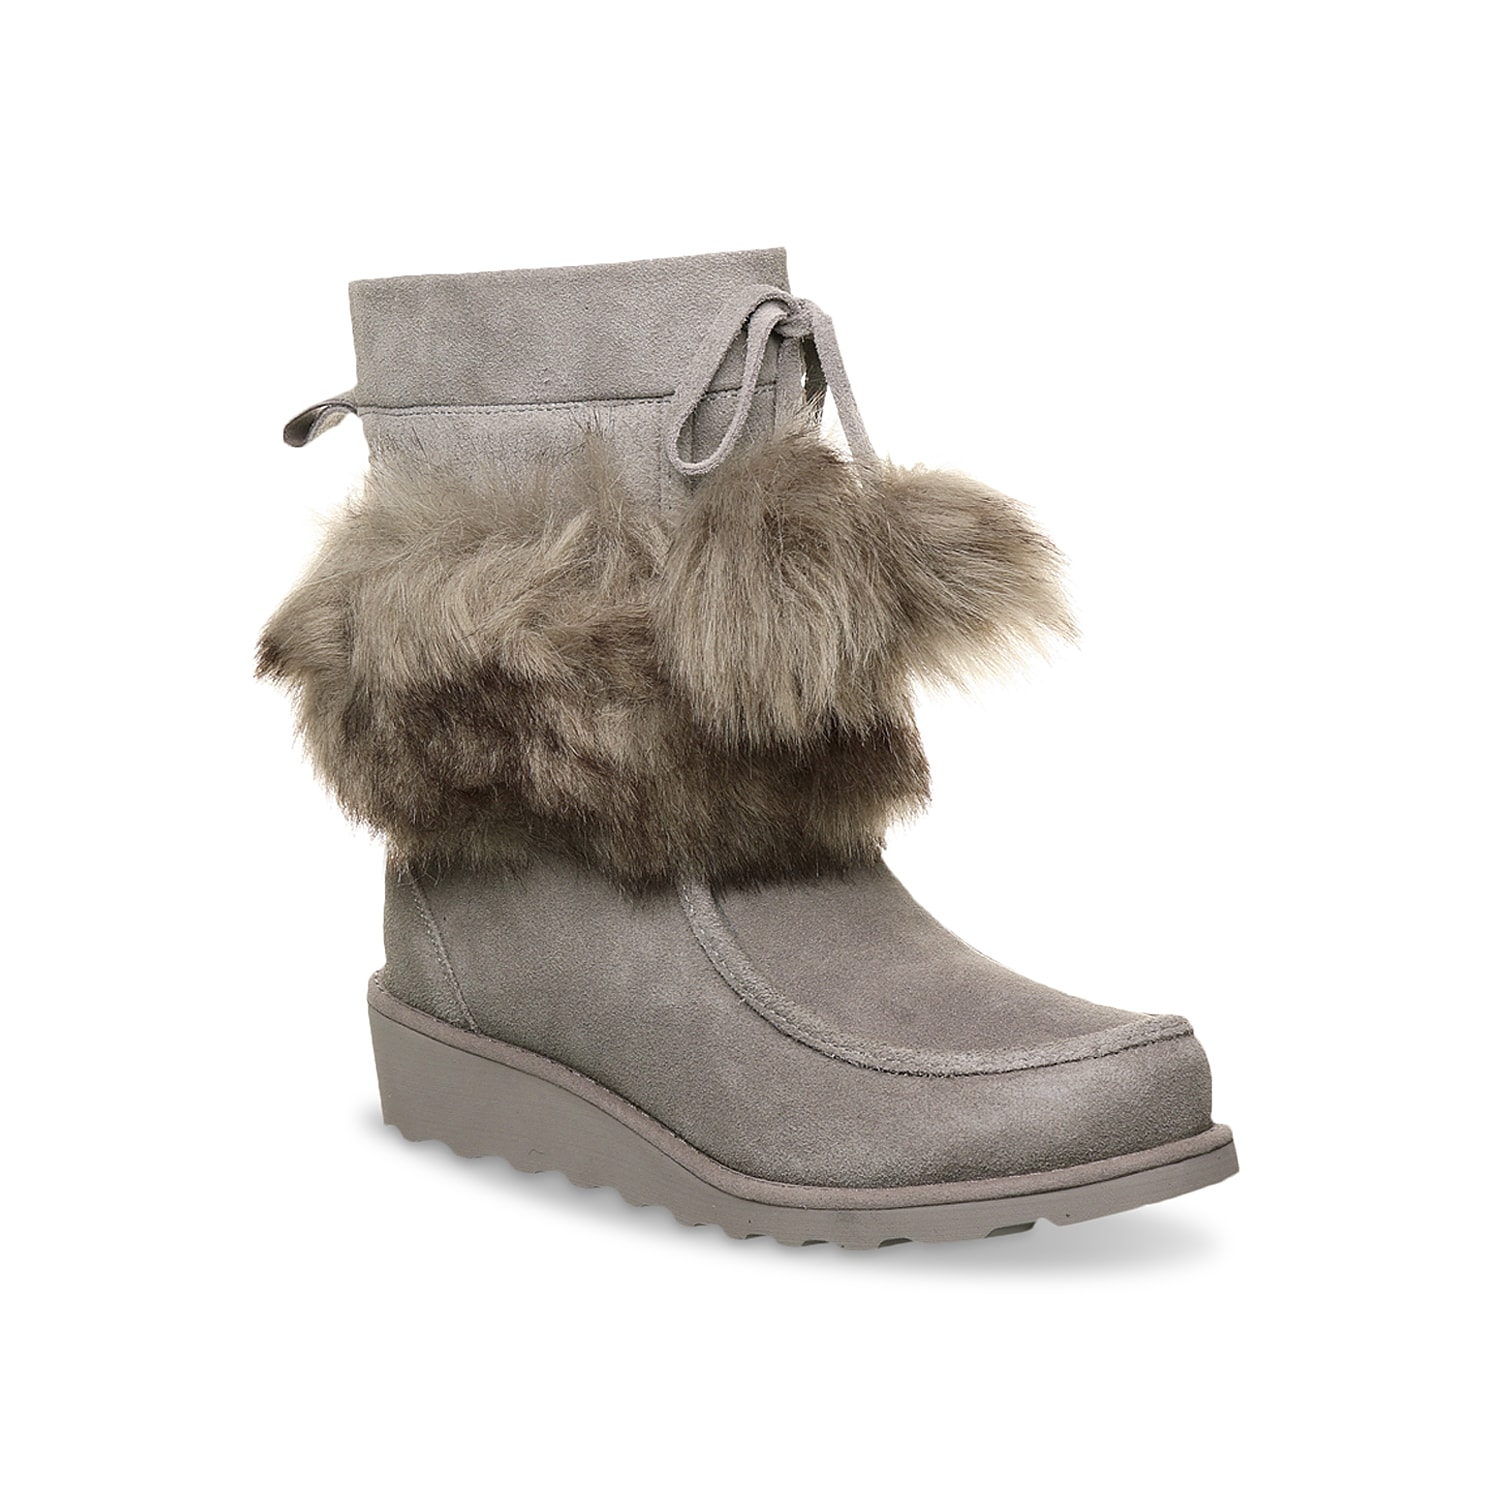 Playful yet practical at the same time, the Bearpaw Arden wedge bootie is a versatile companion. Highlighted with faux fur pom poms, this bootie has comfort shearling footbed and lightweight blown rubber sole.Click here for Boot Measuring Guide.